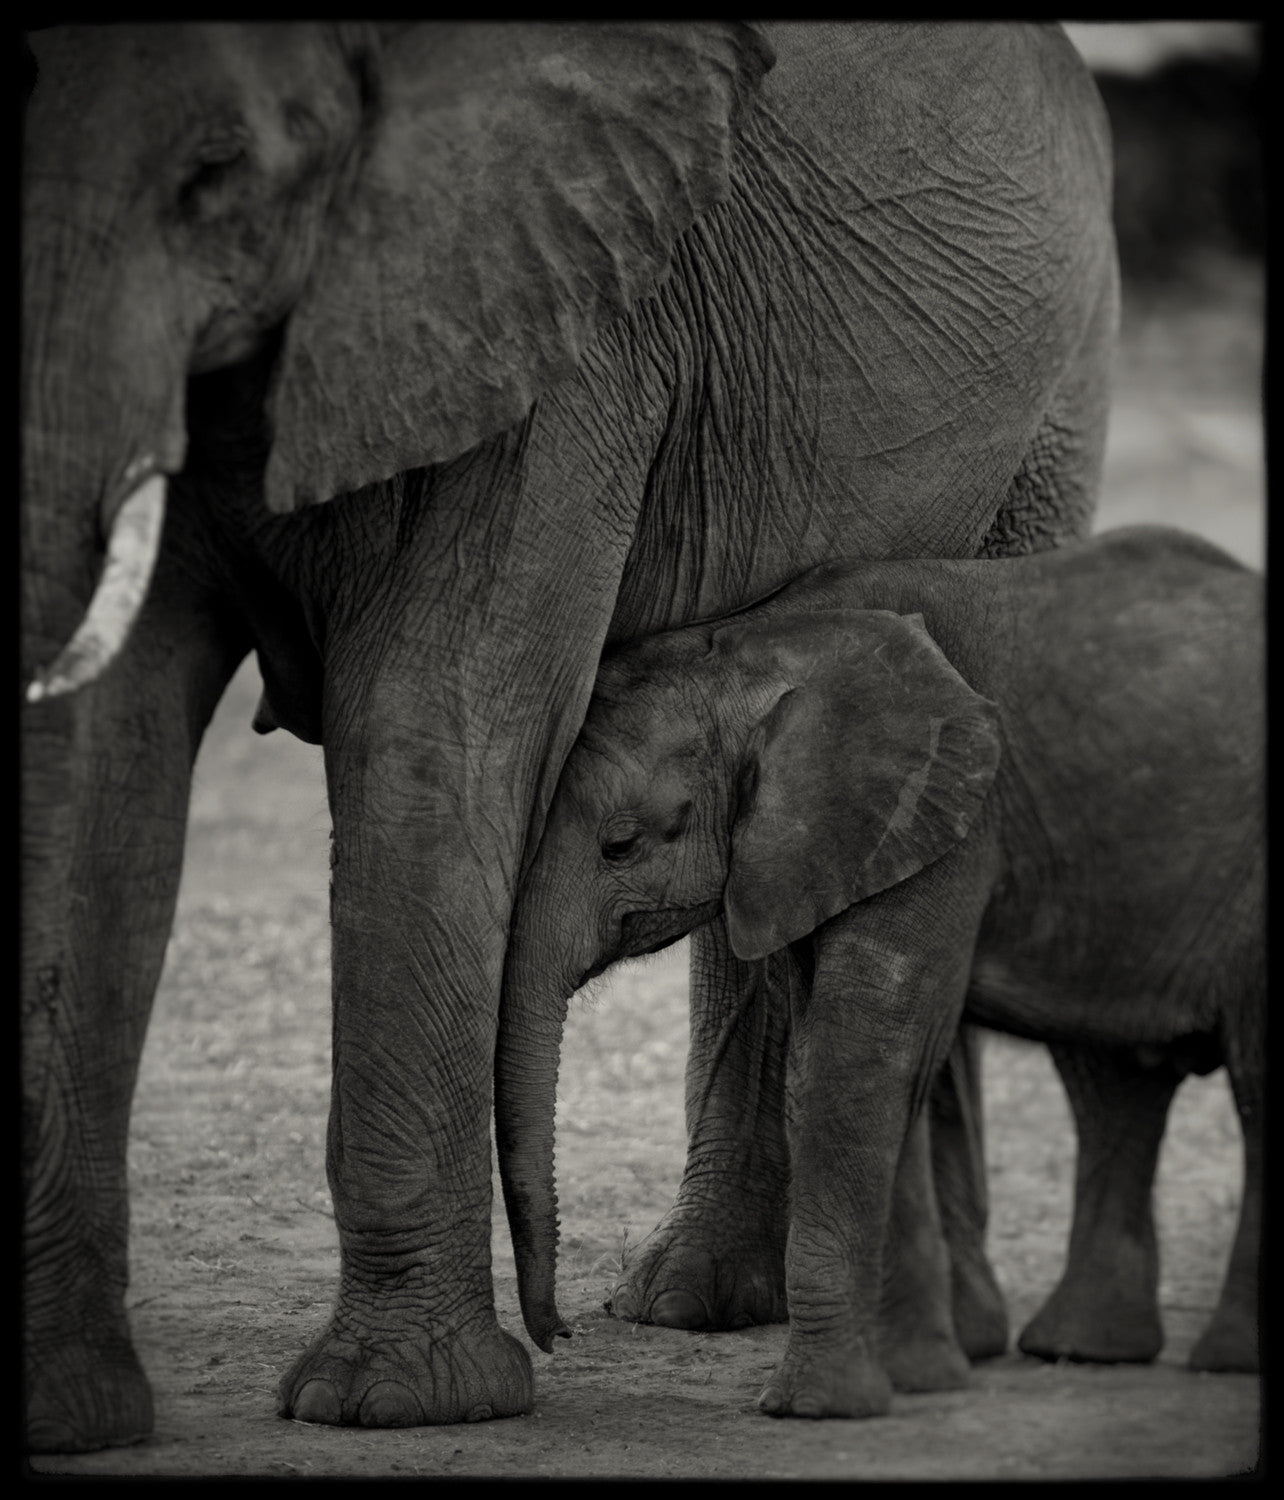 Christopher Rimmer 'Elephant and Calf, Botswana' - Archival pigment print on paper